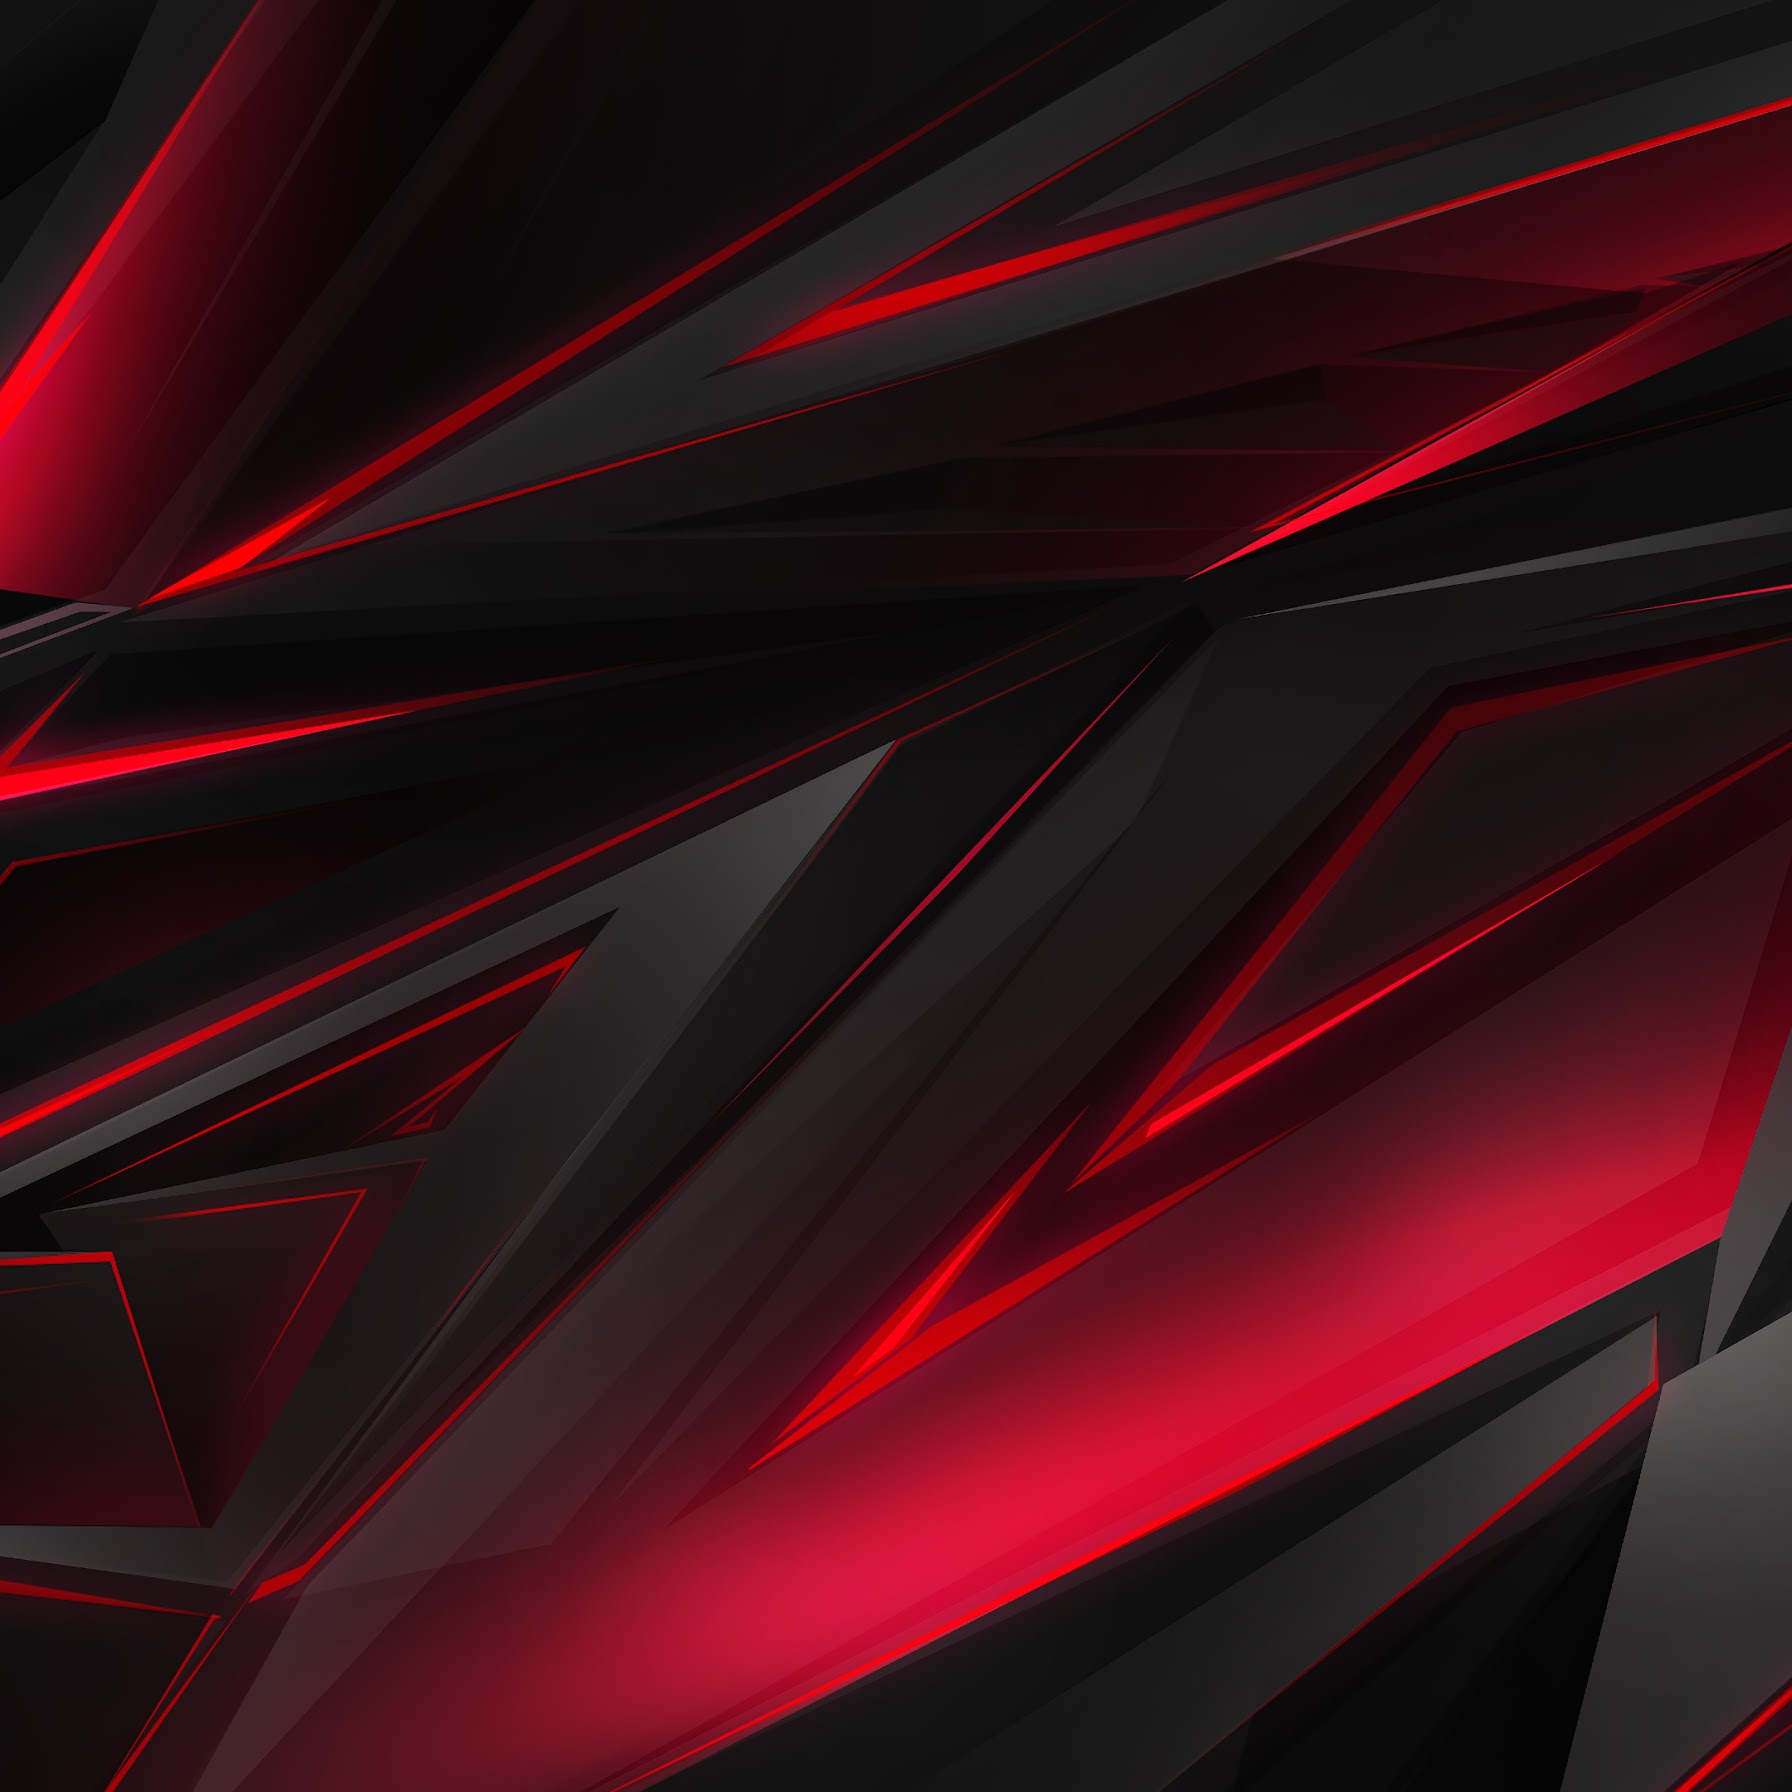 Black, Red, Abstract, Polygon, 3D, 4K, #45 Wallpaper